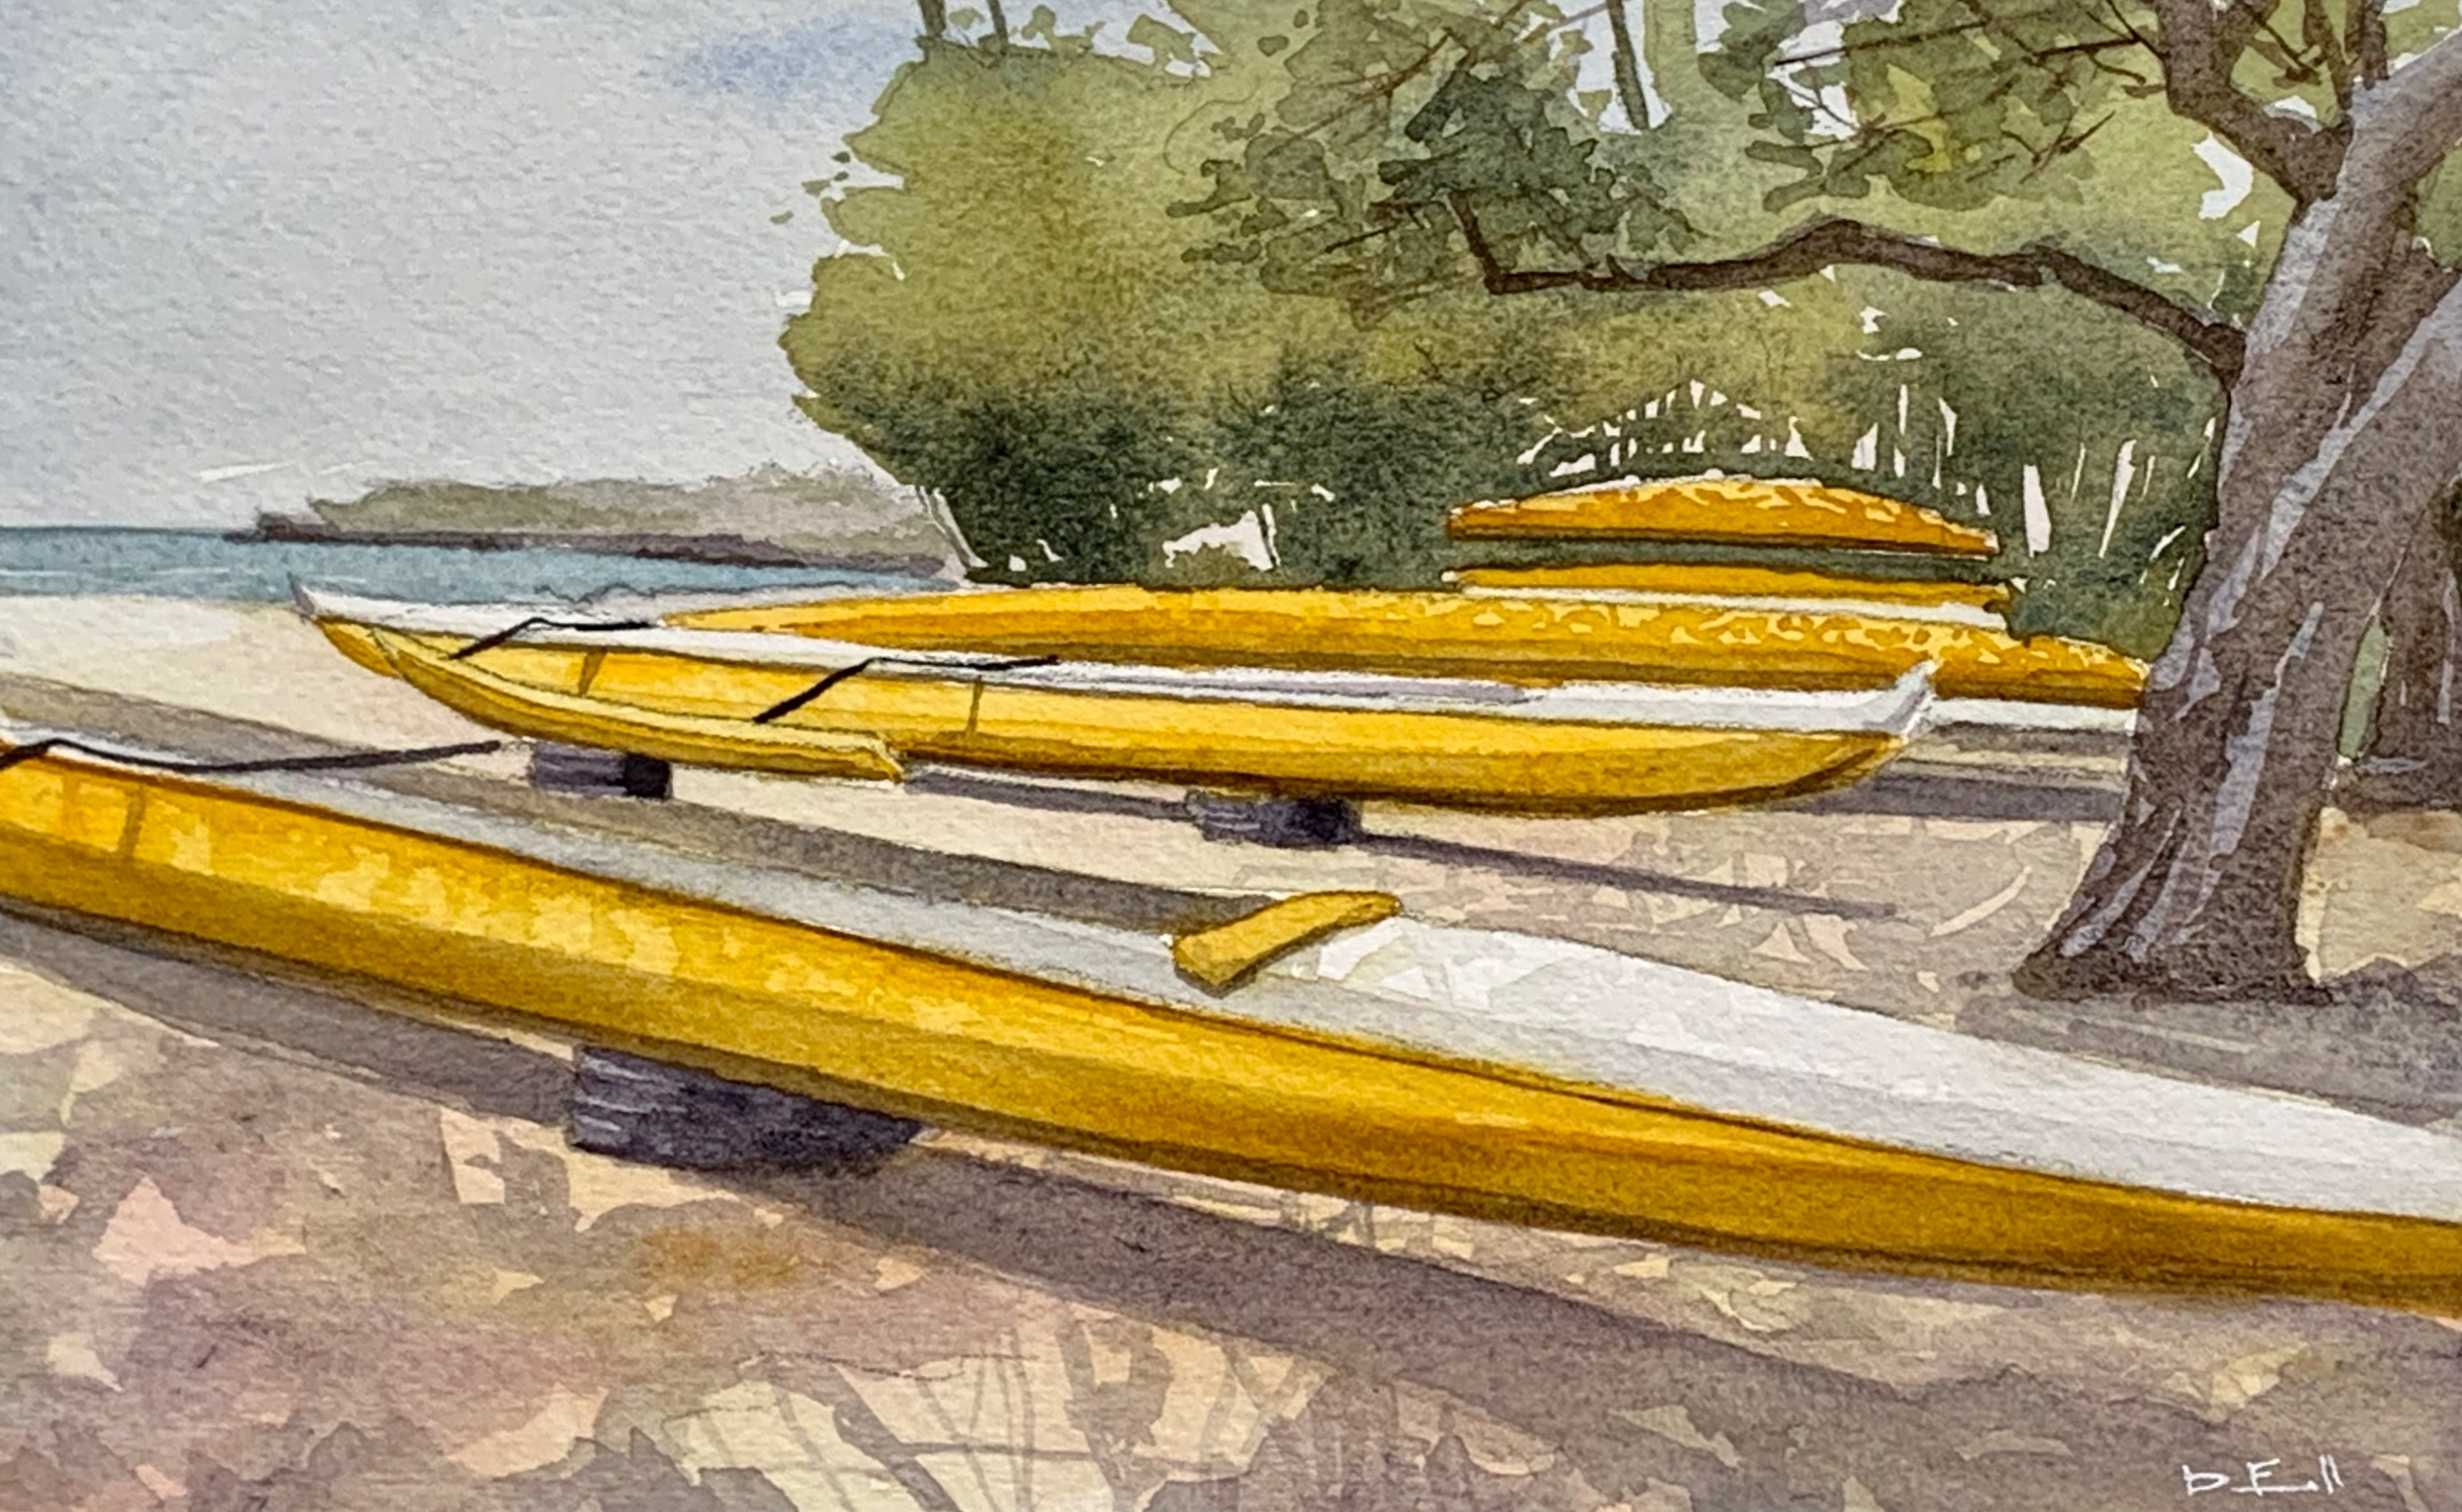 04 yellow outrigger canoes m9evcn